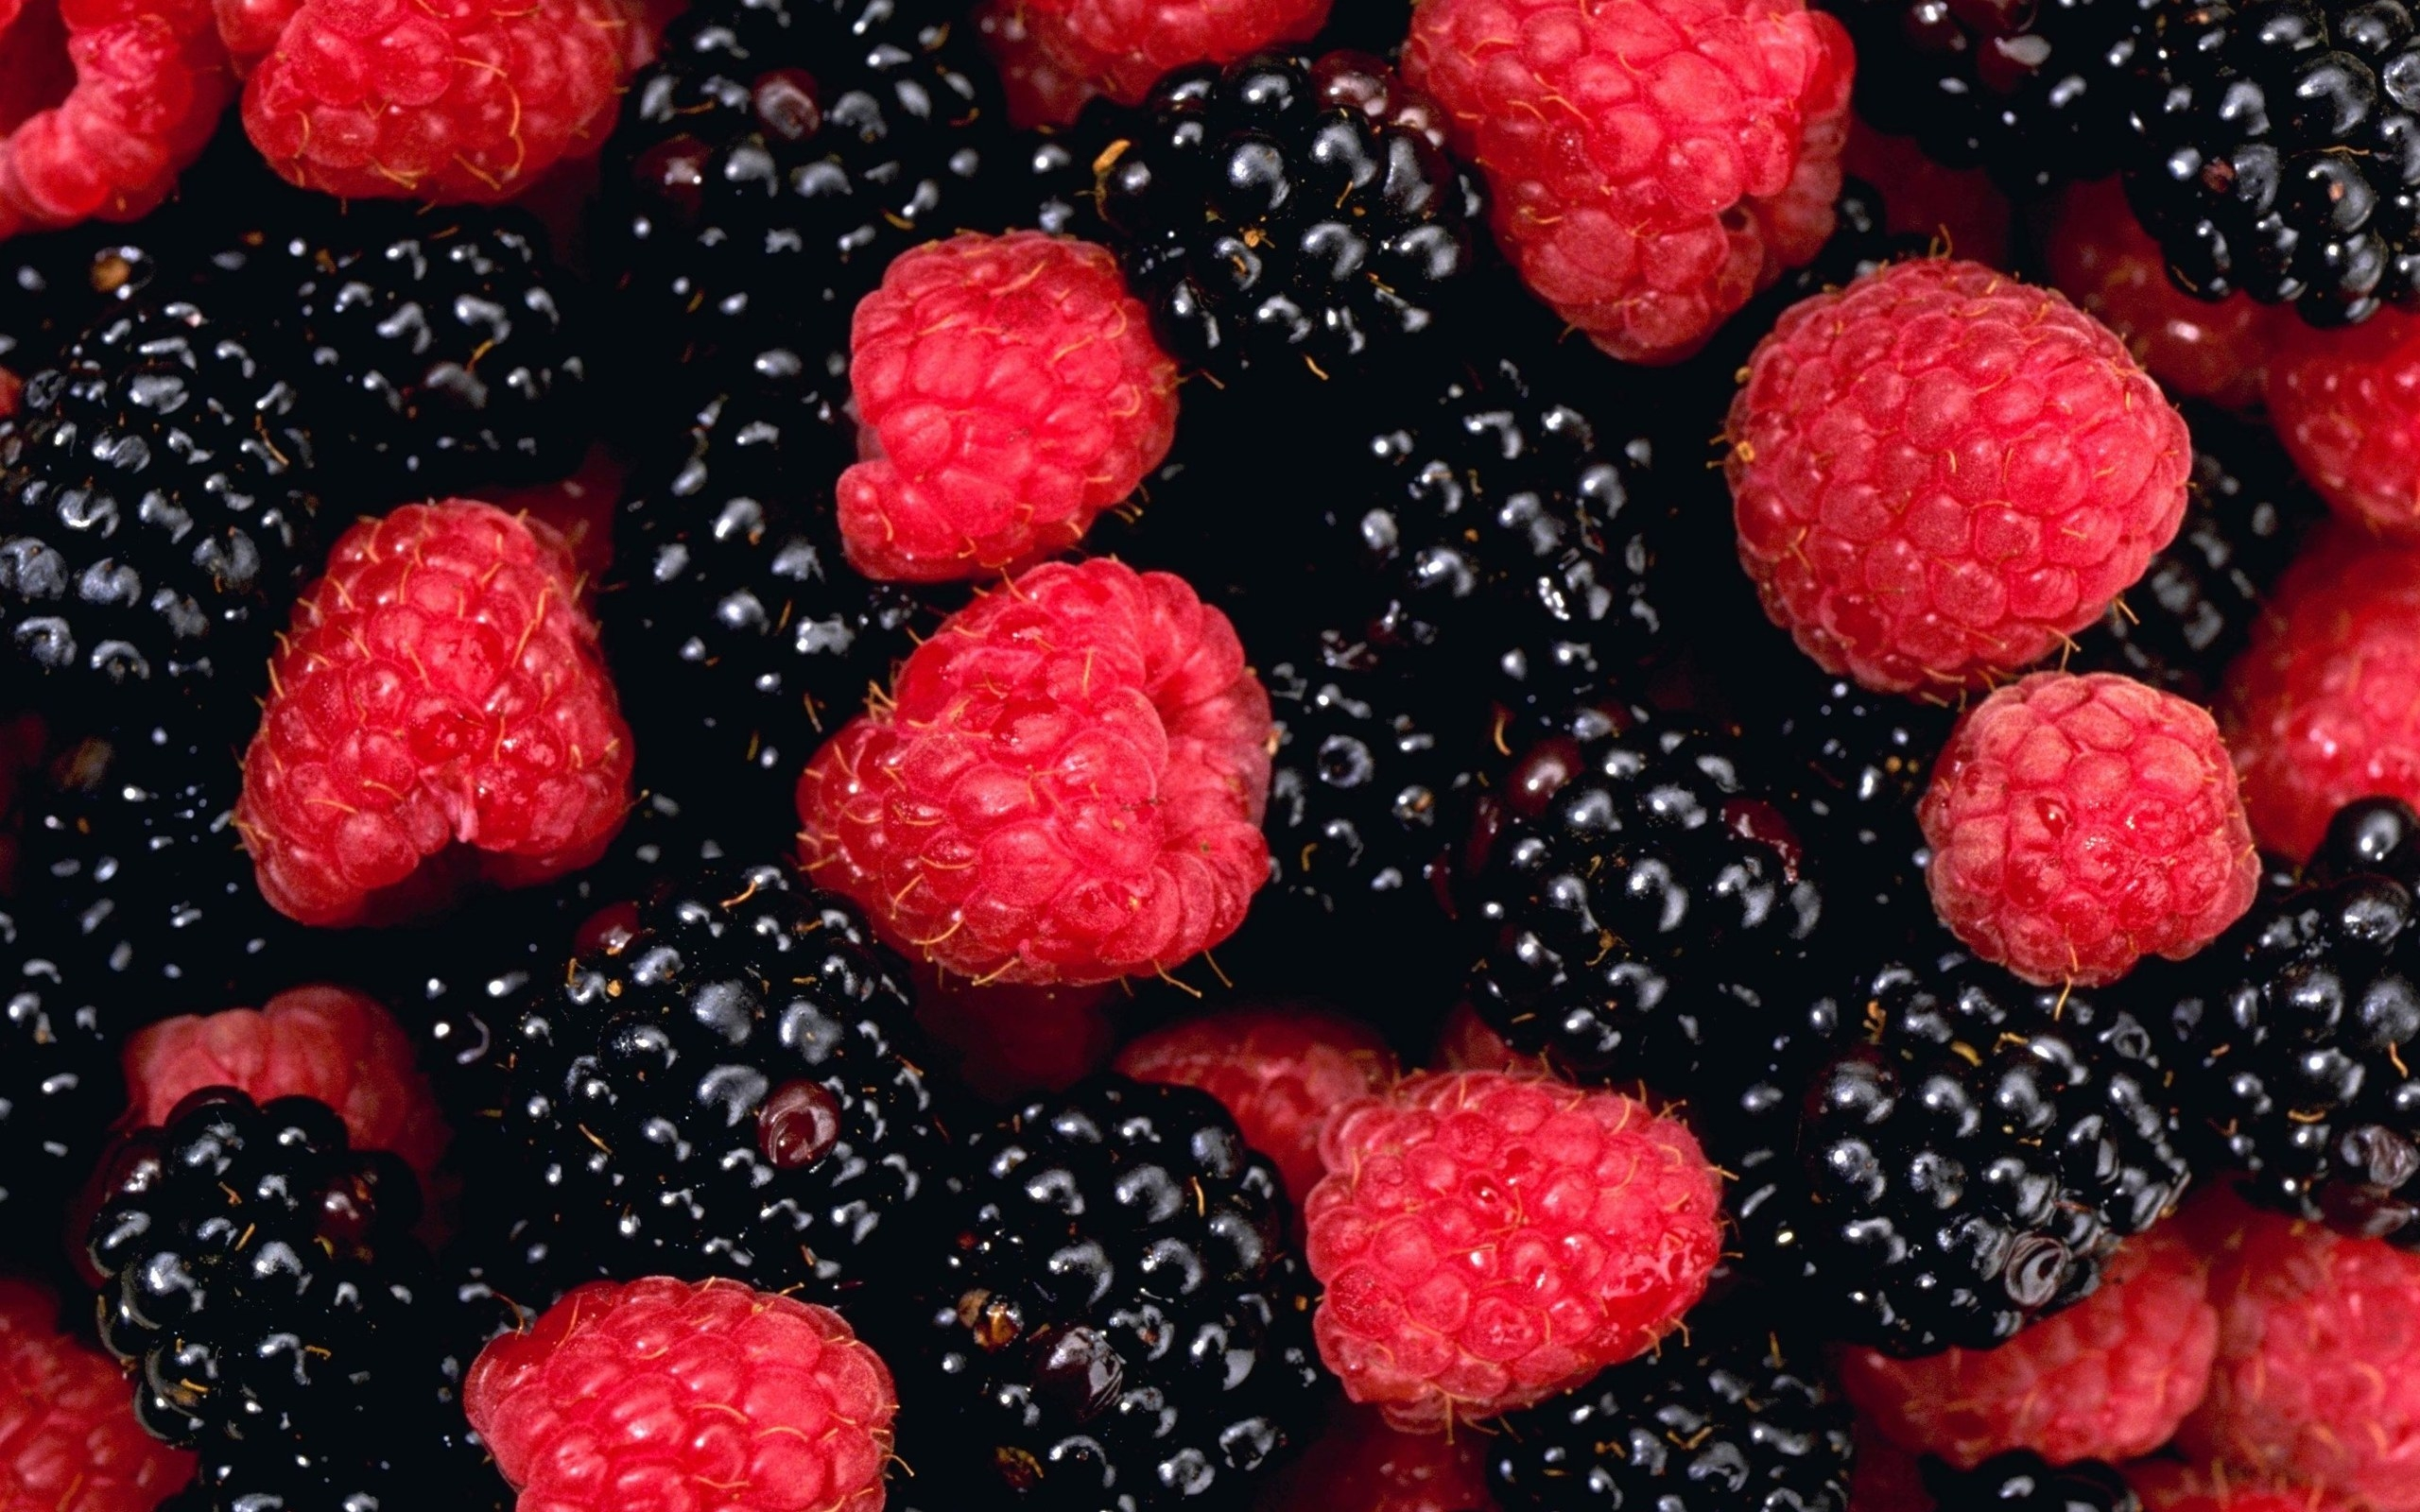 raspberriesblackberries